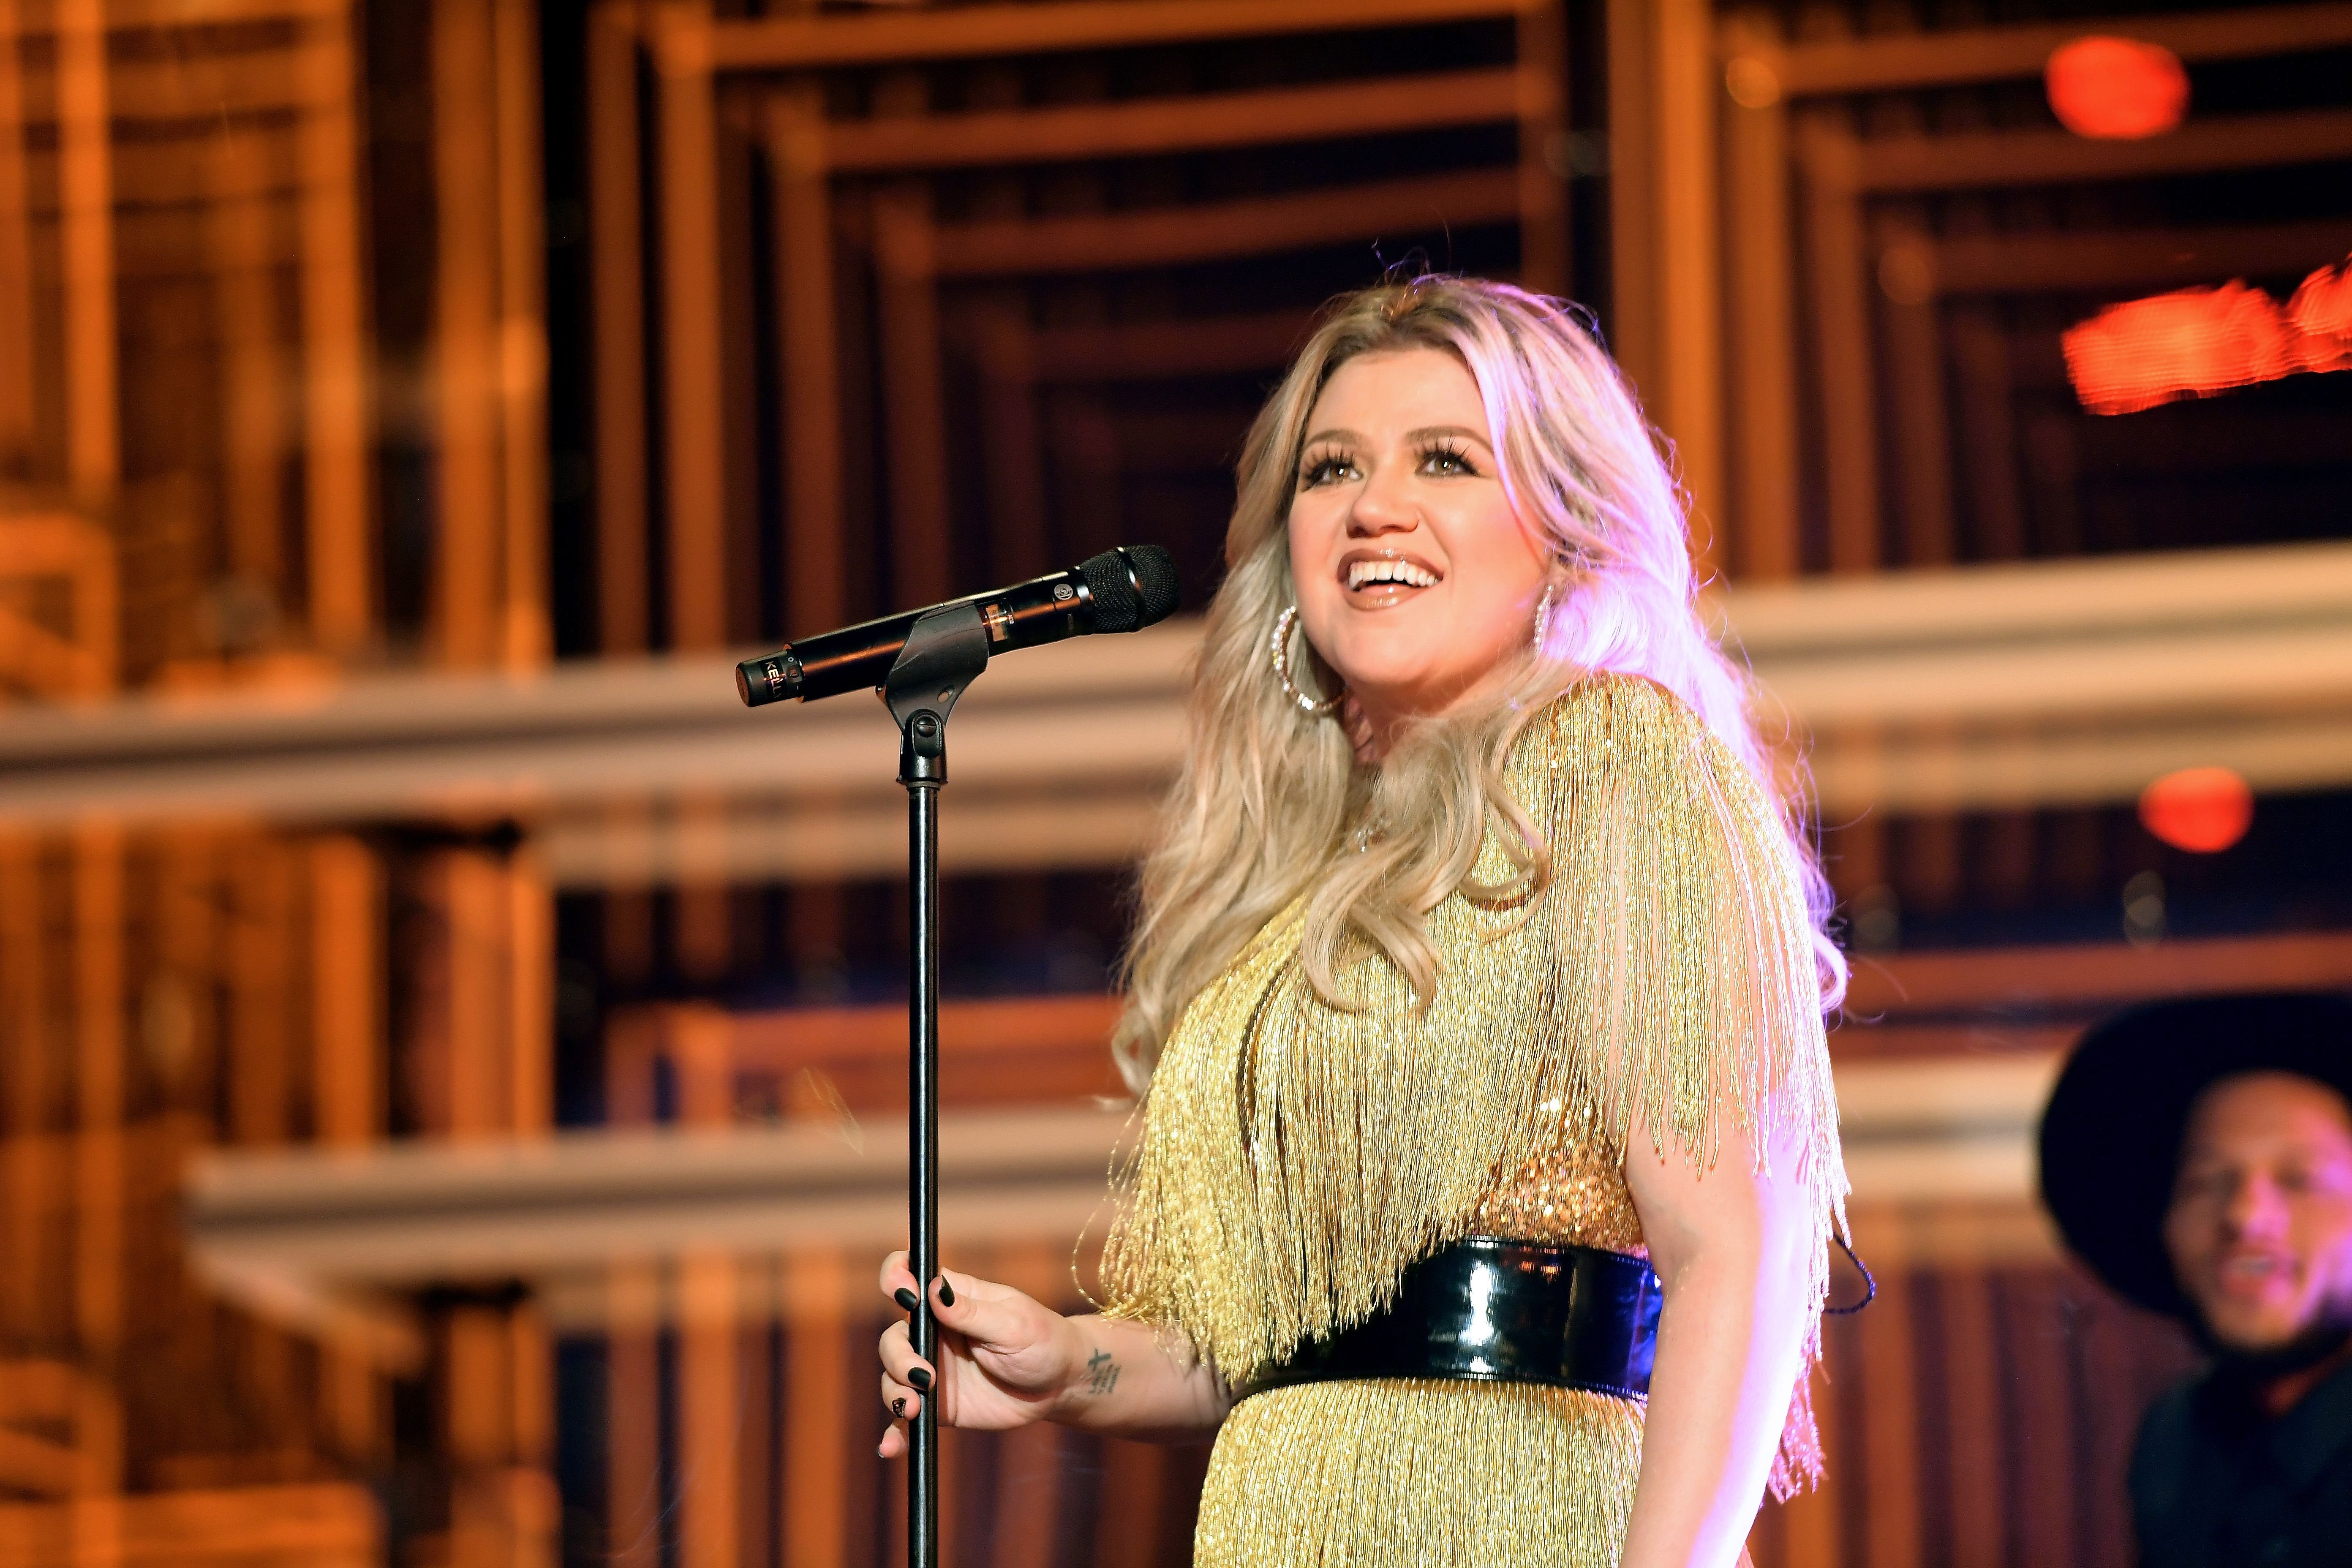 Kelly Clarkson on stage / Getty Images